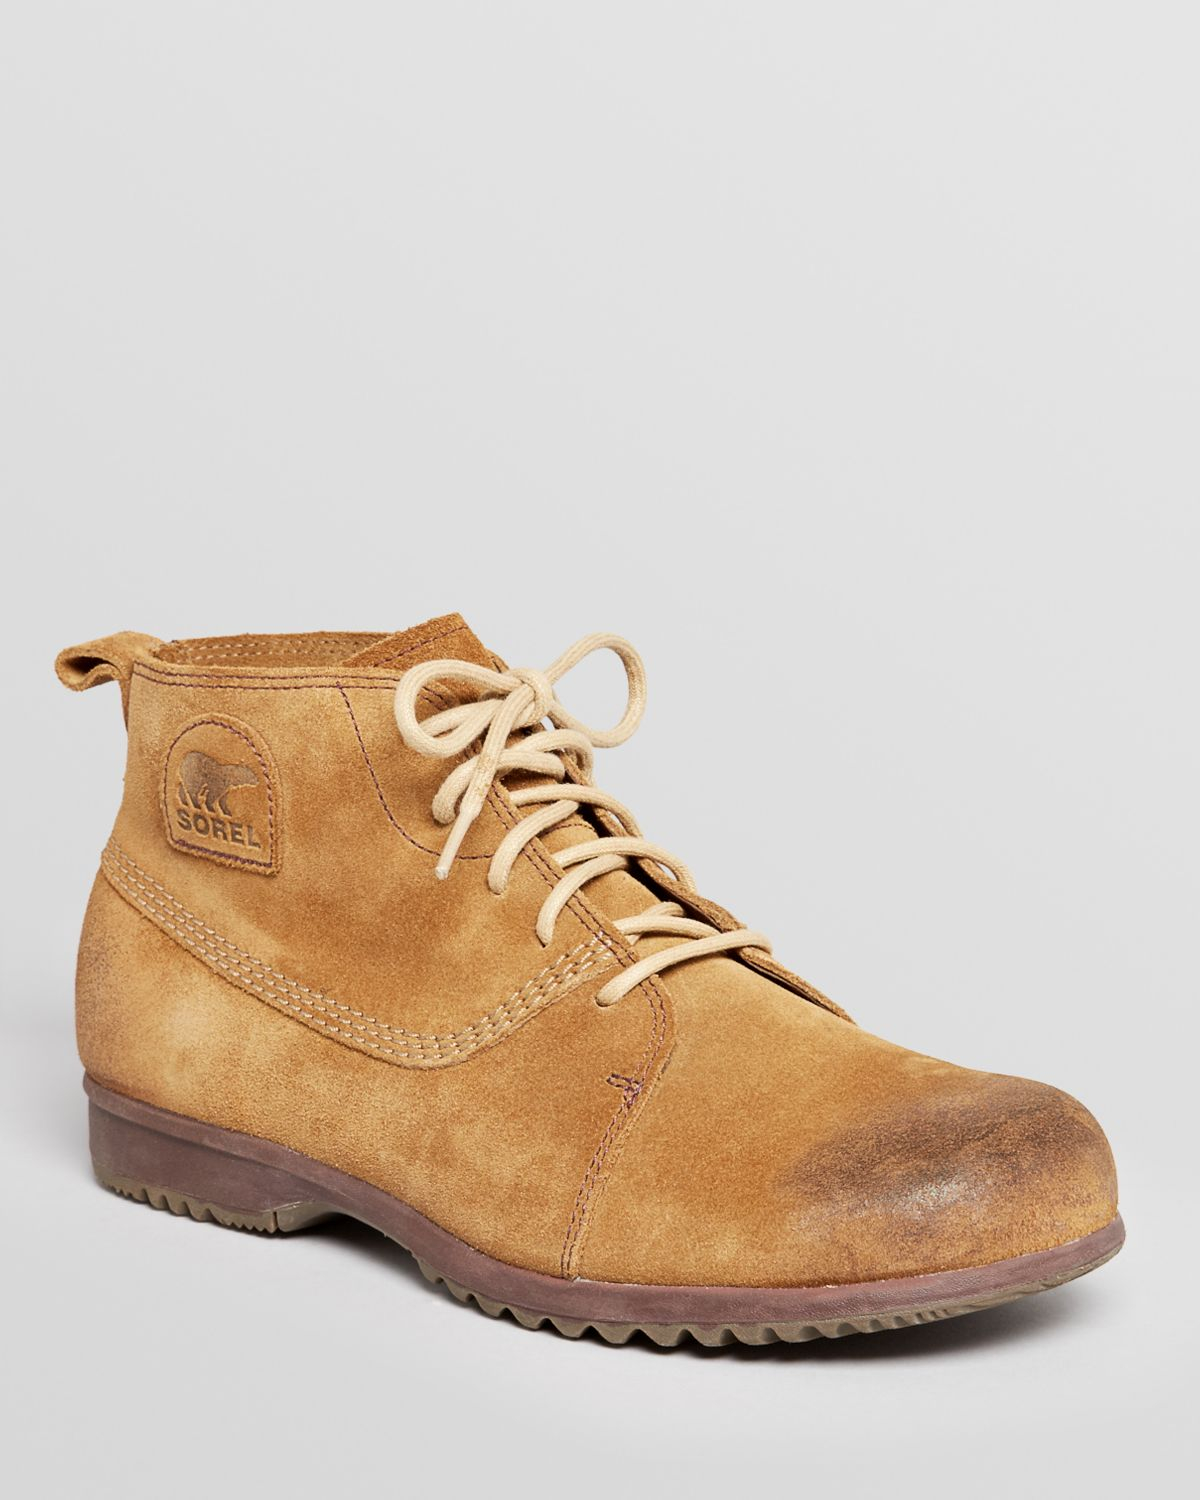 Sorel Greely Suede Chukka Boots In Brown For Men Lyst